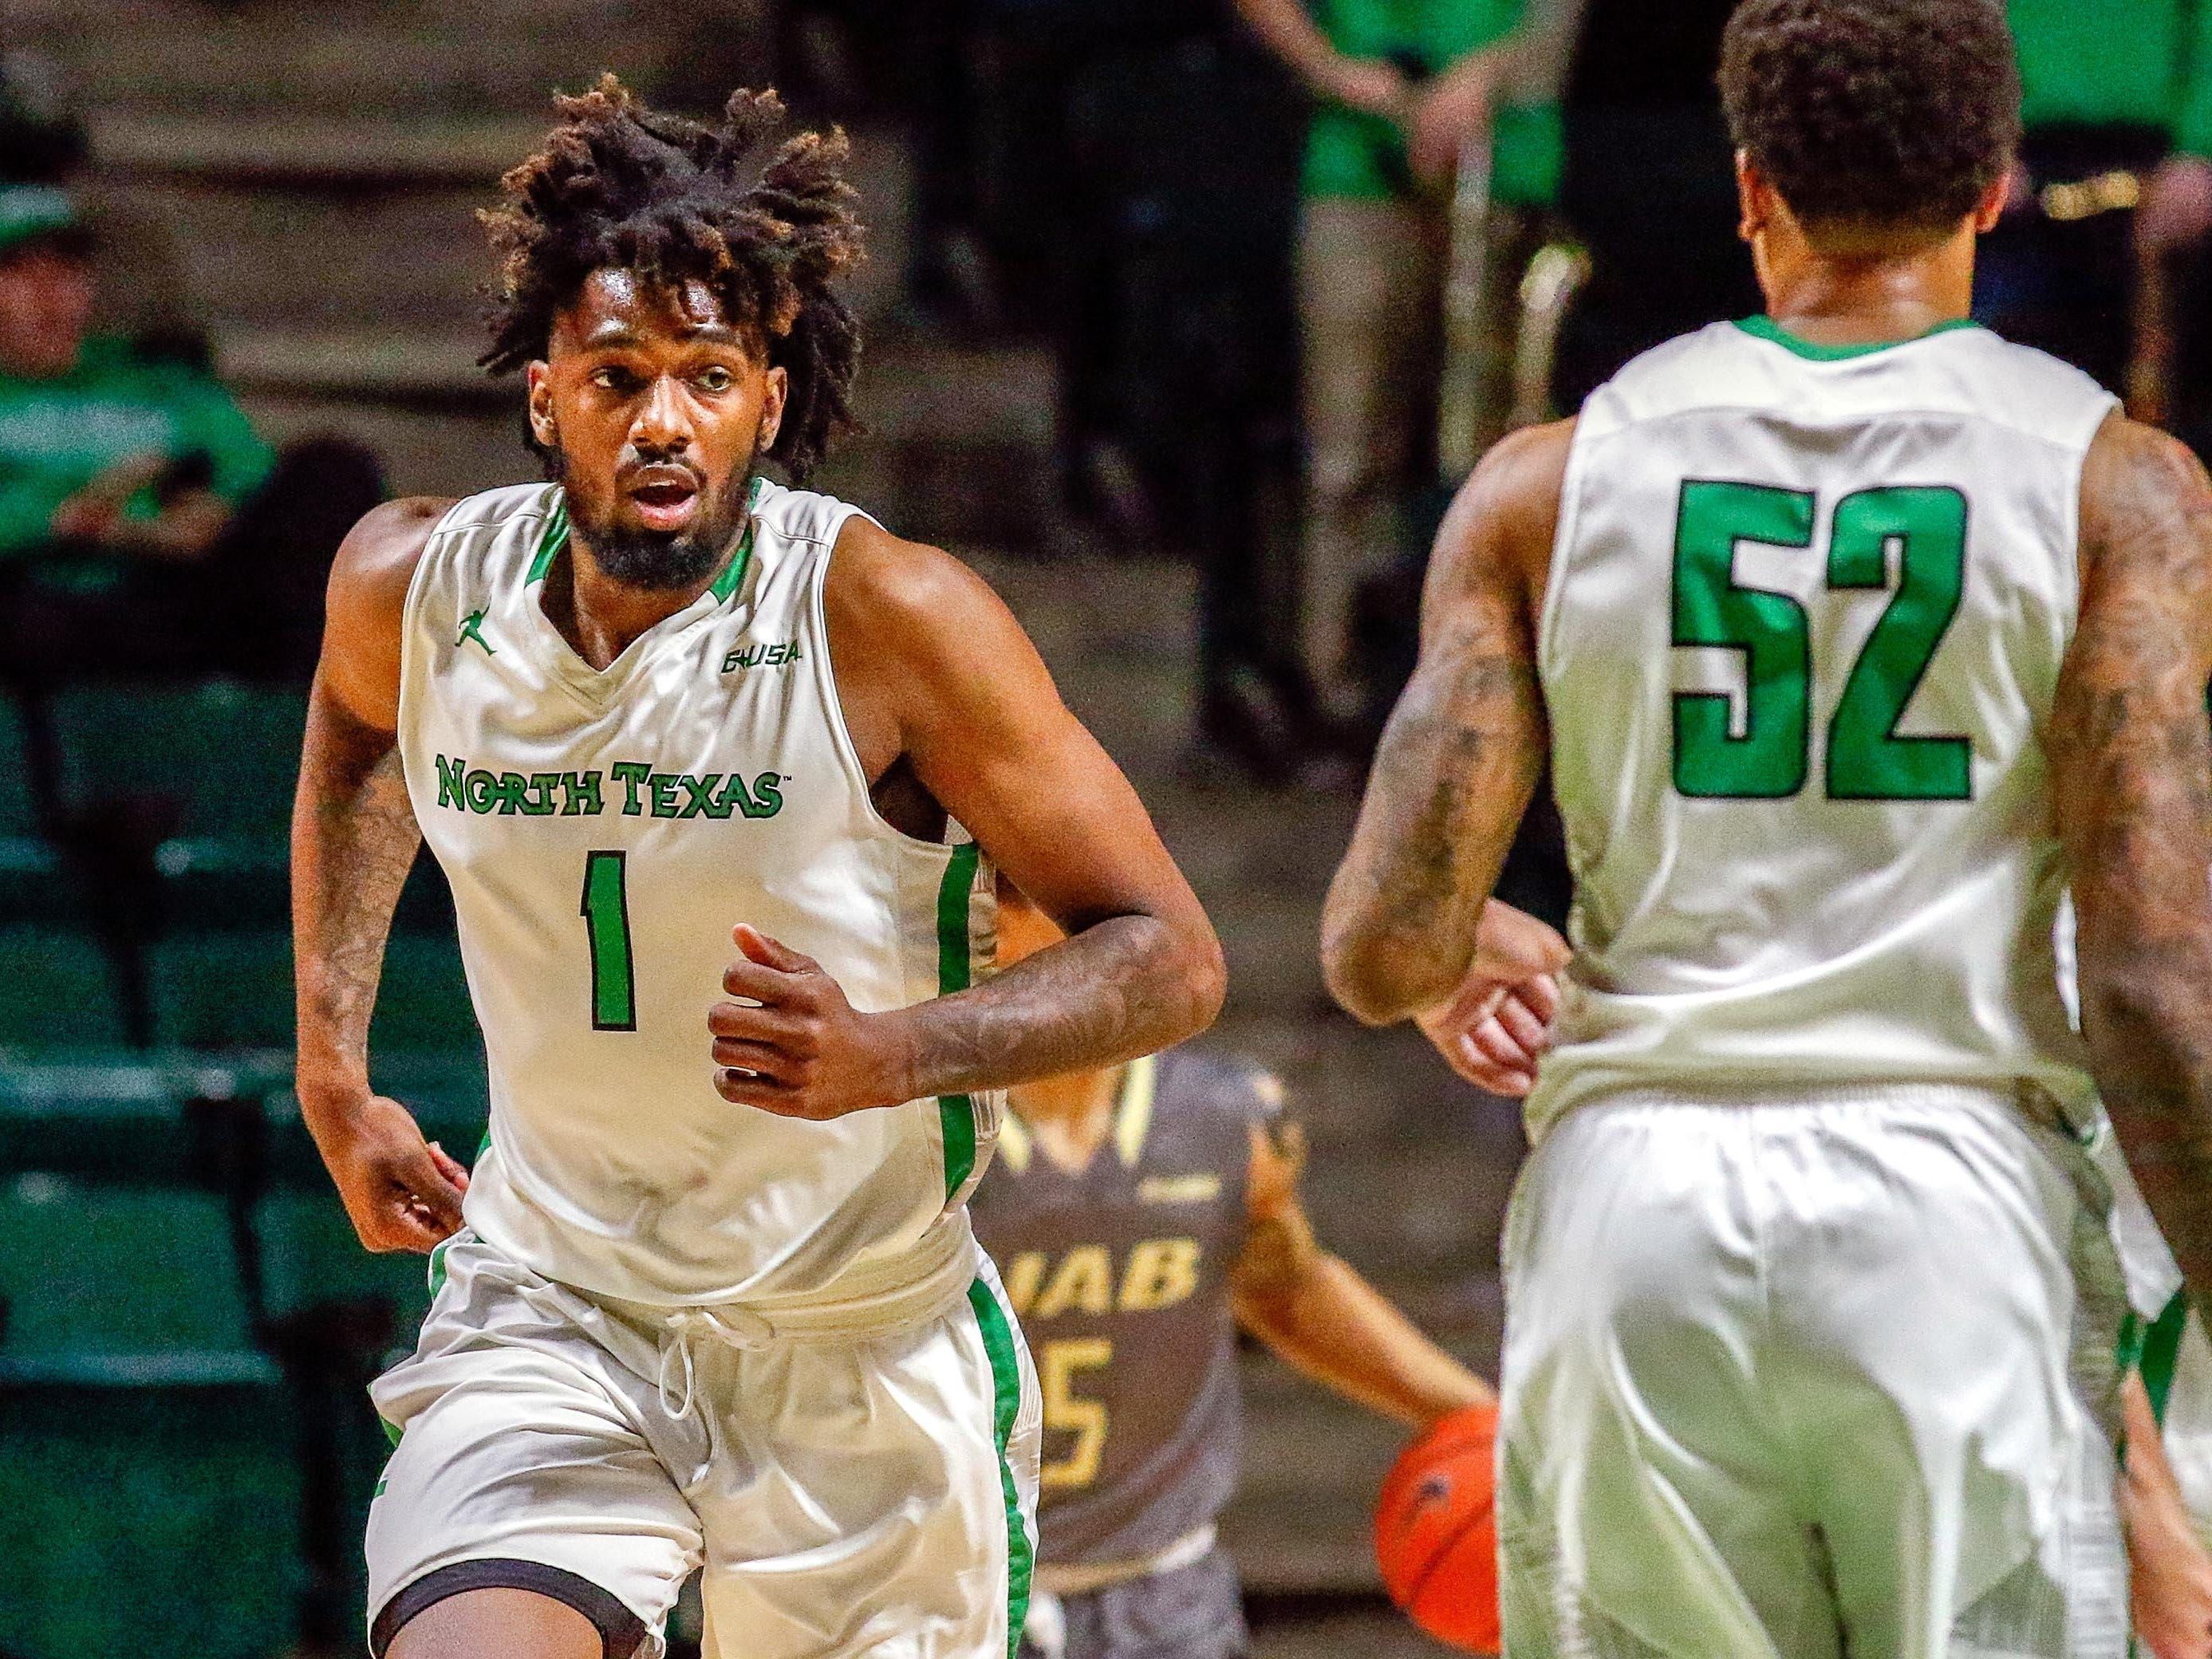 North Texas Mean Green forward Jeremy Combs (1) runs back up court after a made basket against the UAB Blazers during the second half at UNT Coliseum.